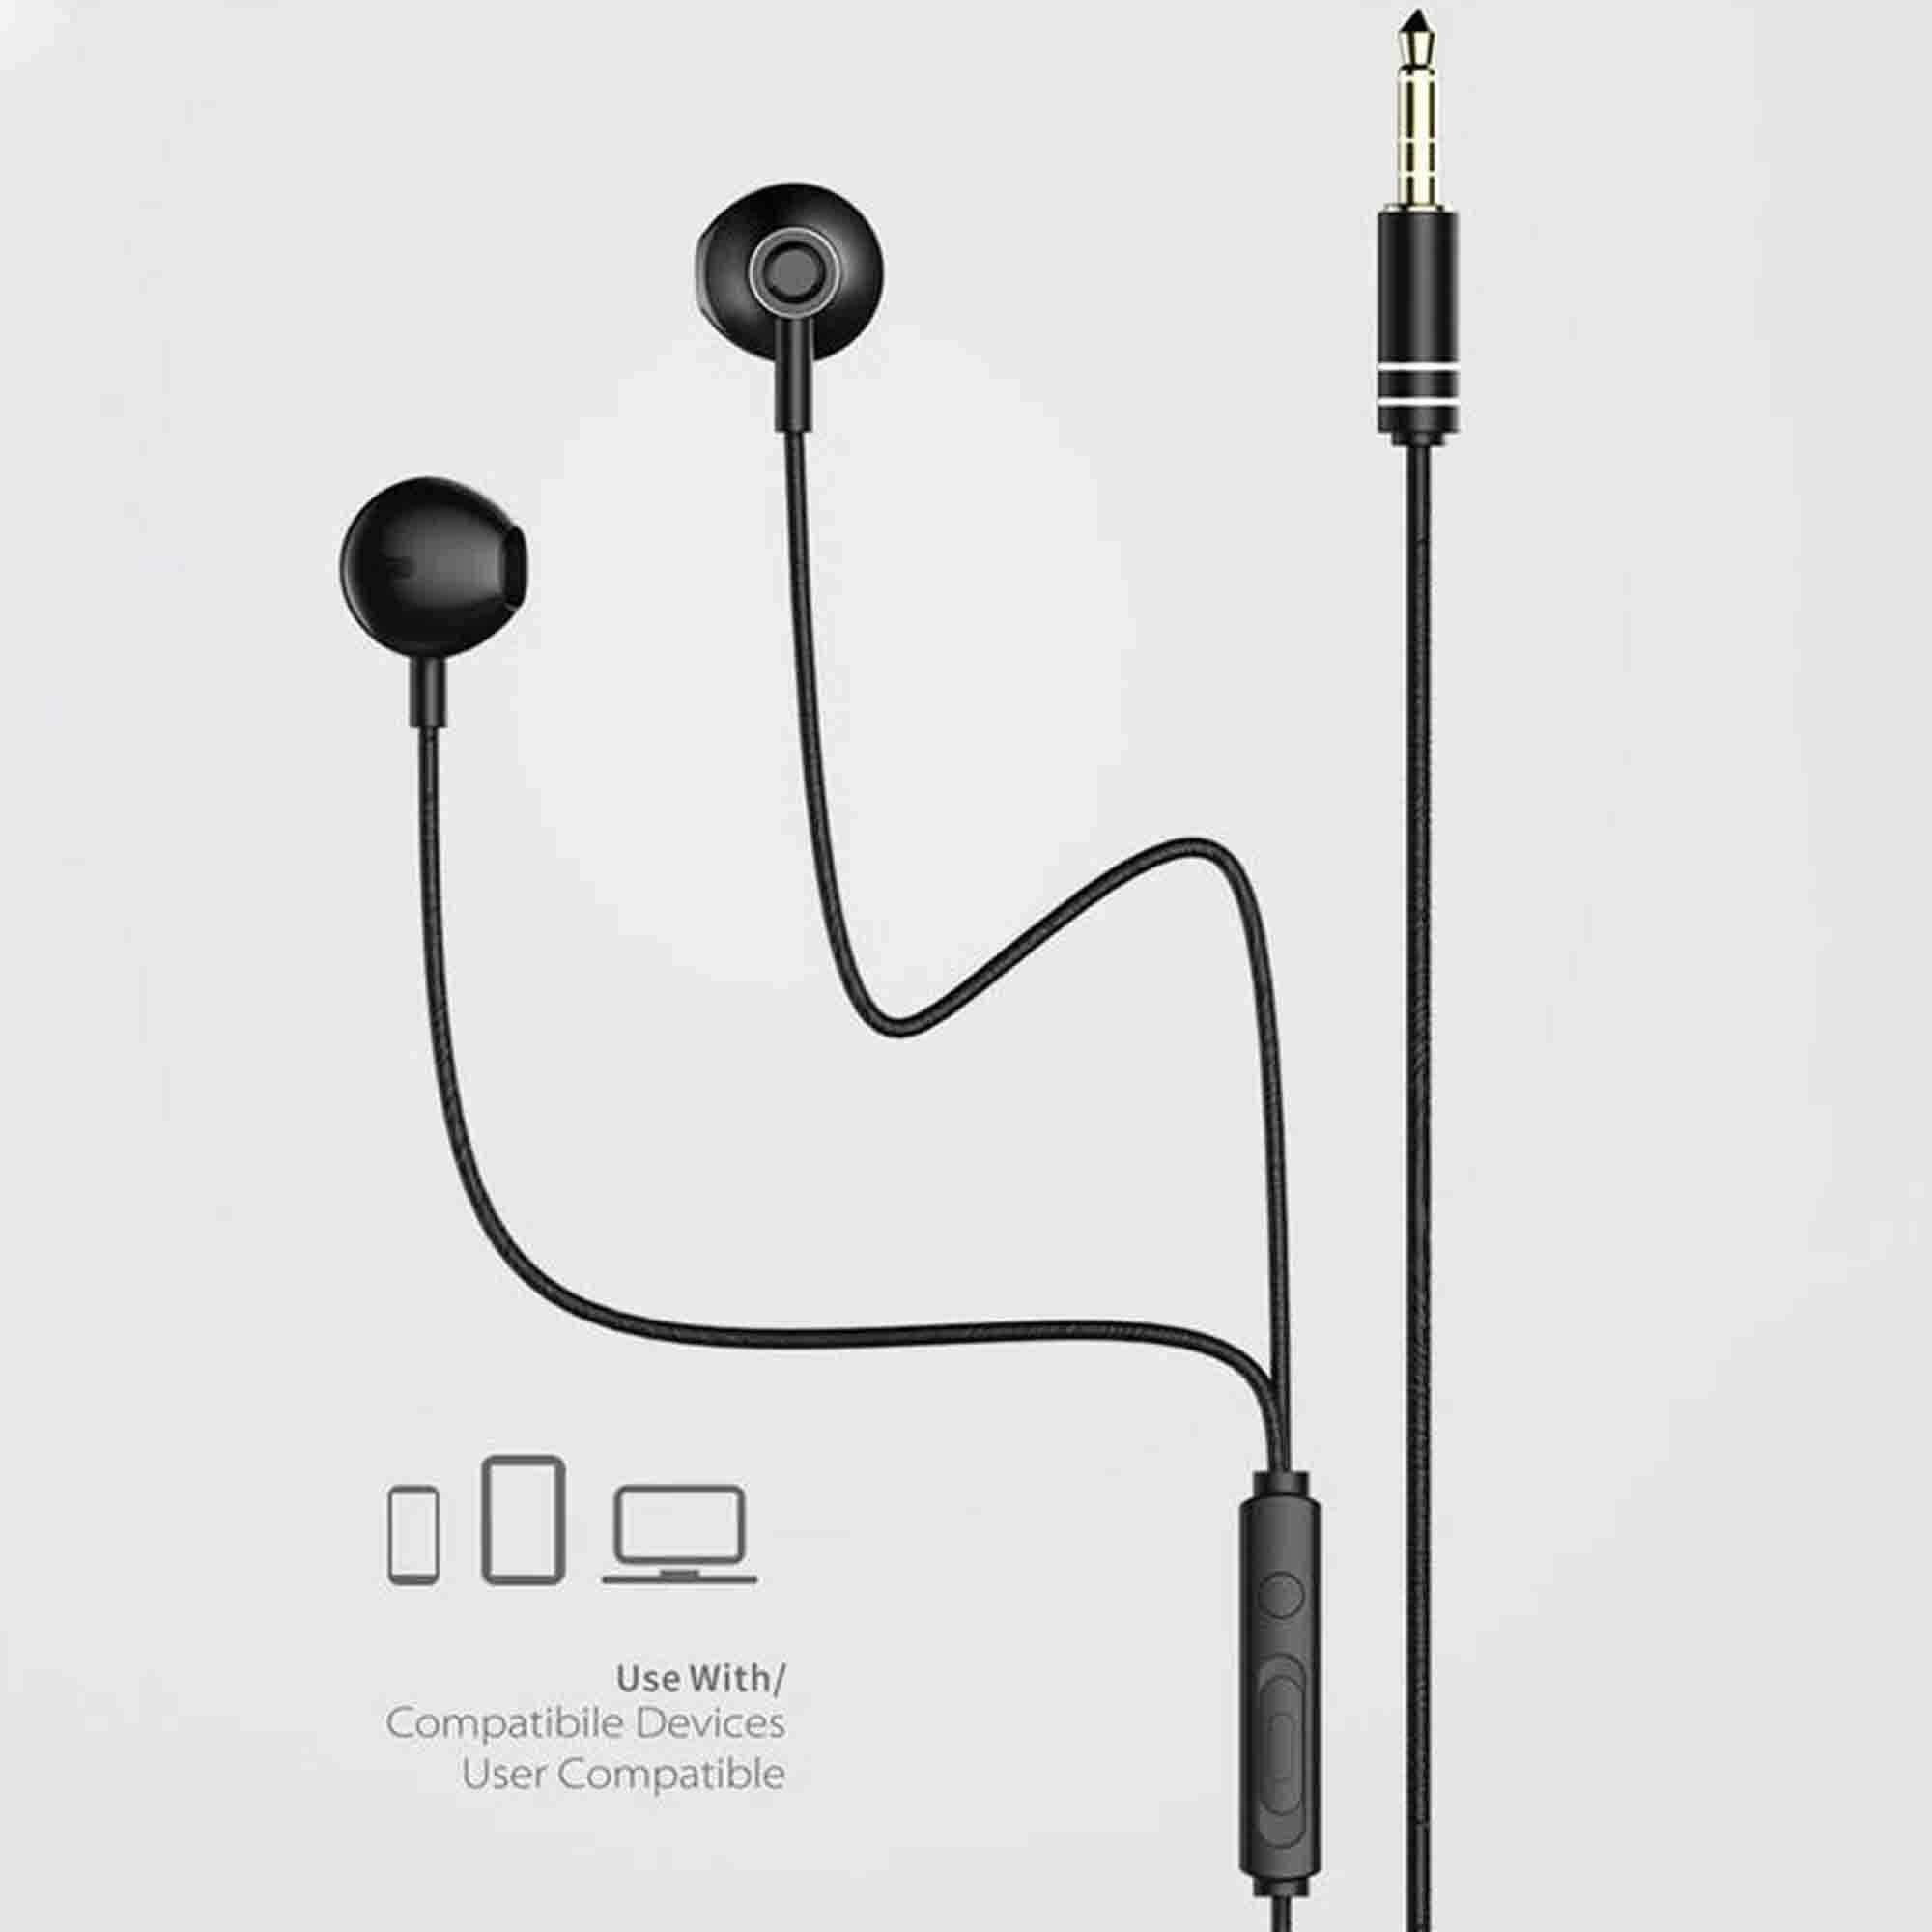 Original Remax RM-711 Earphone with Microphone Support Music Control for Smart phones 2.jpg